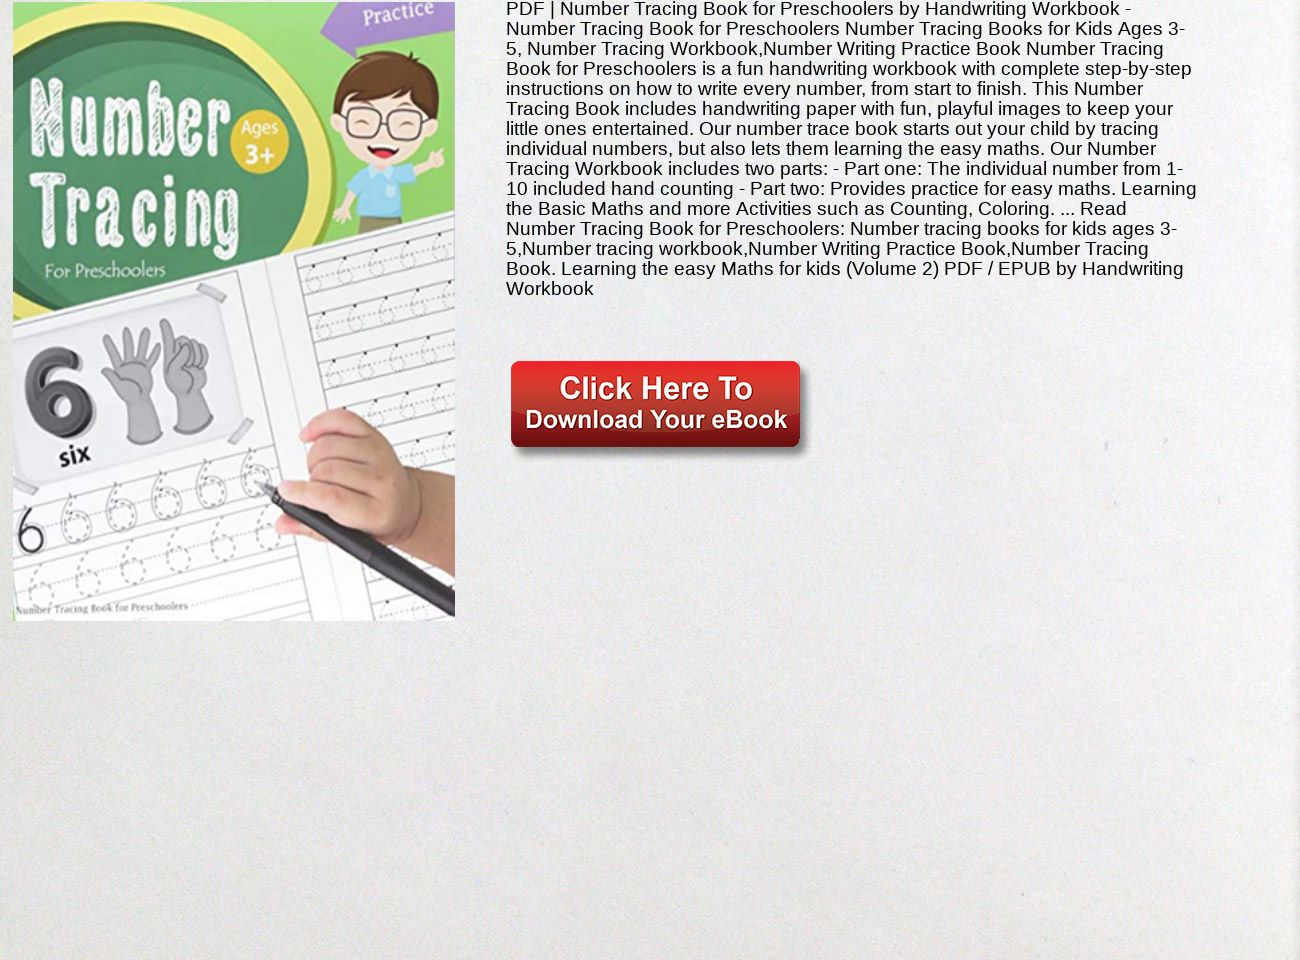 Pdf Number Tracing Book For Preschoolers Handwriting